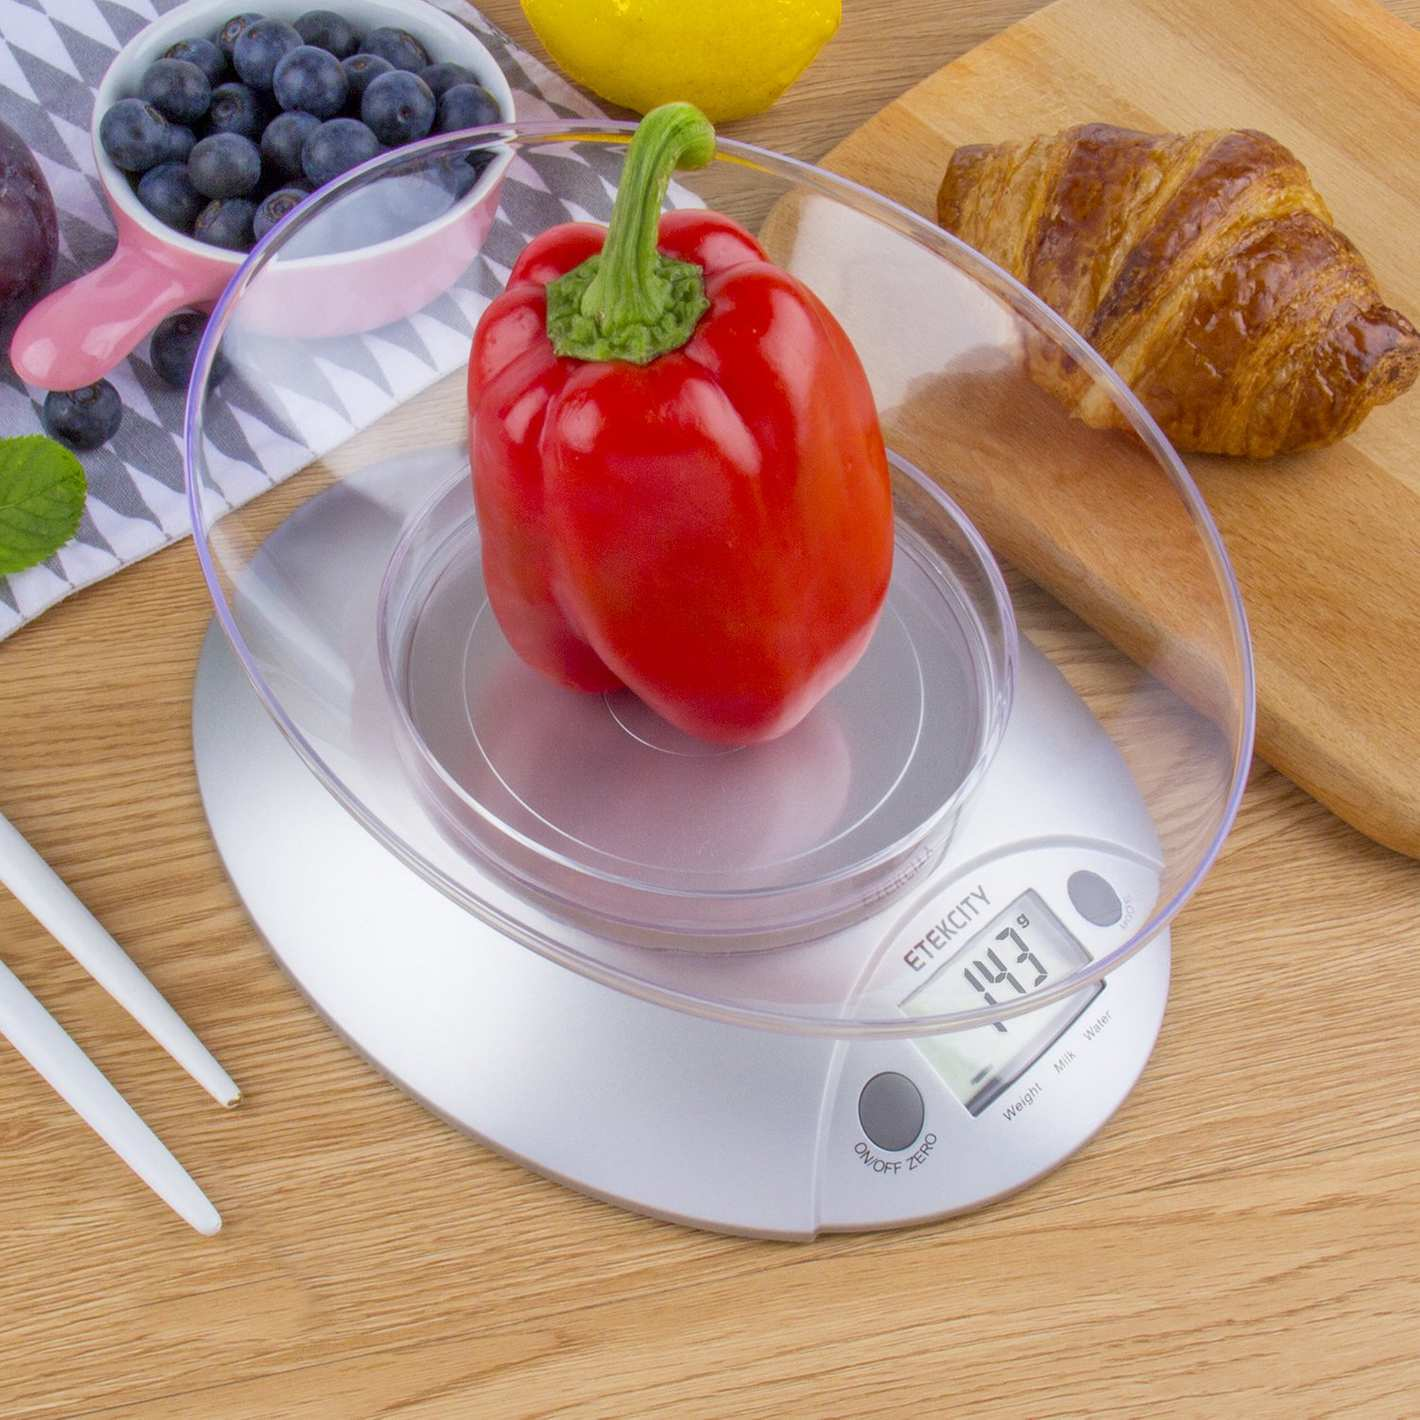 Etekcity Digital Kitchen Food Scale and Multifunction Weight Scale with Removable Bowl